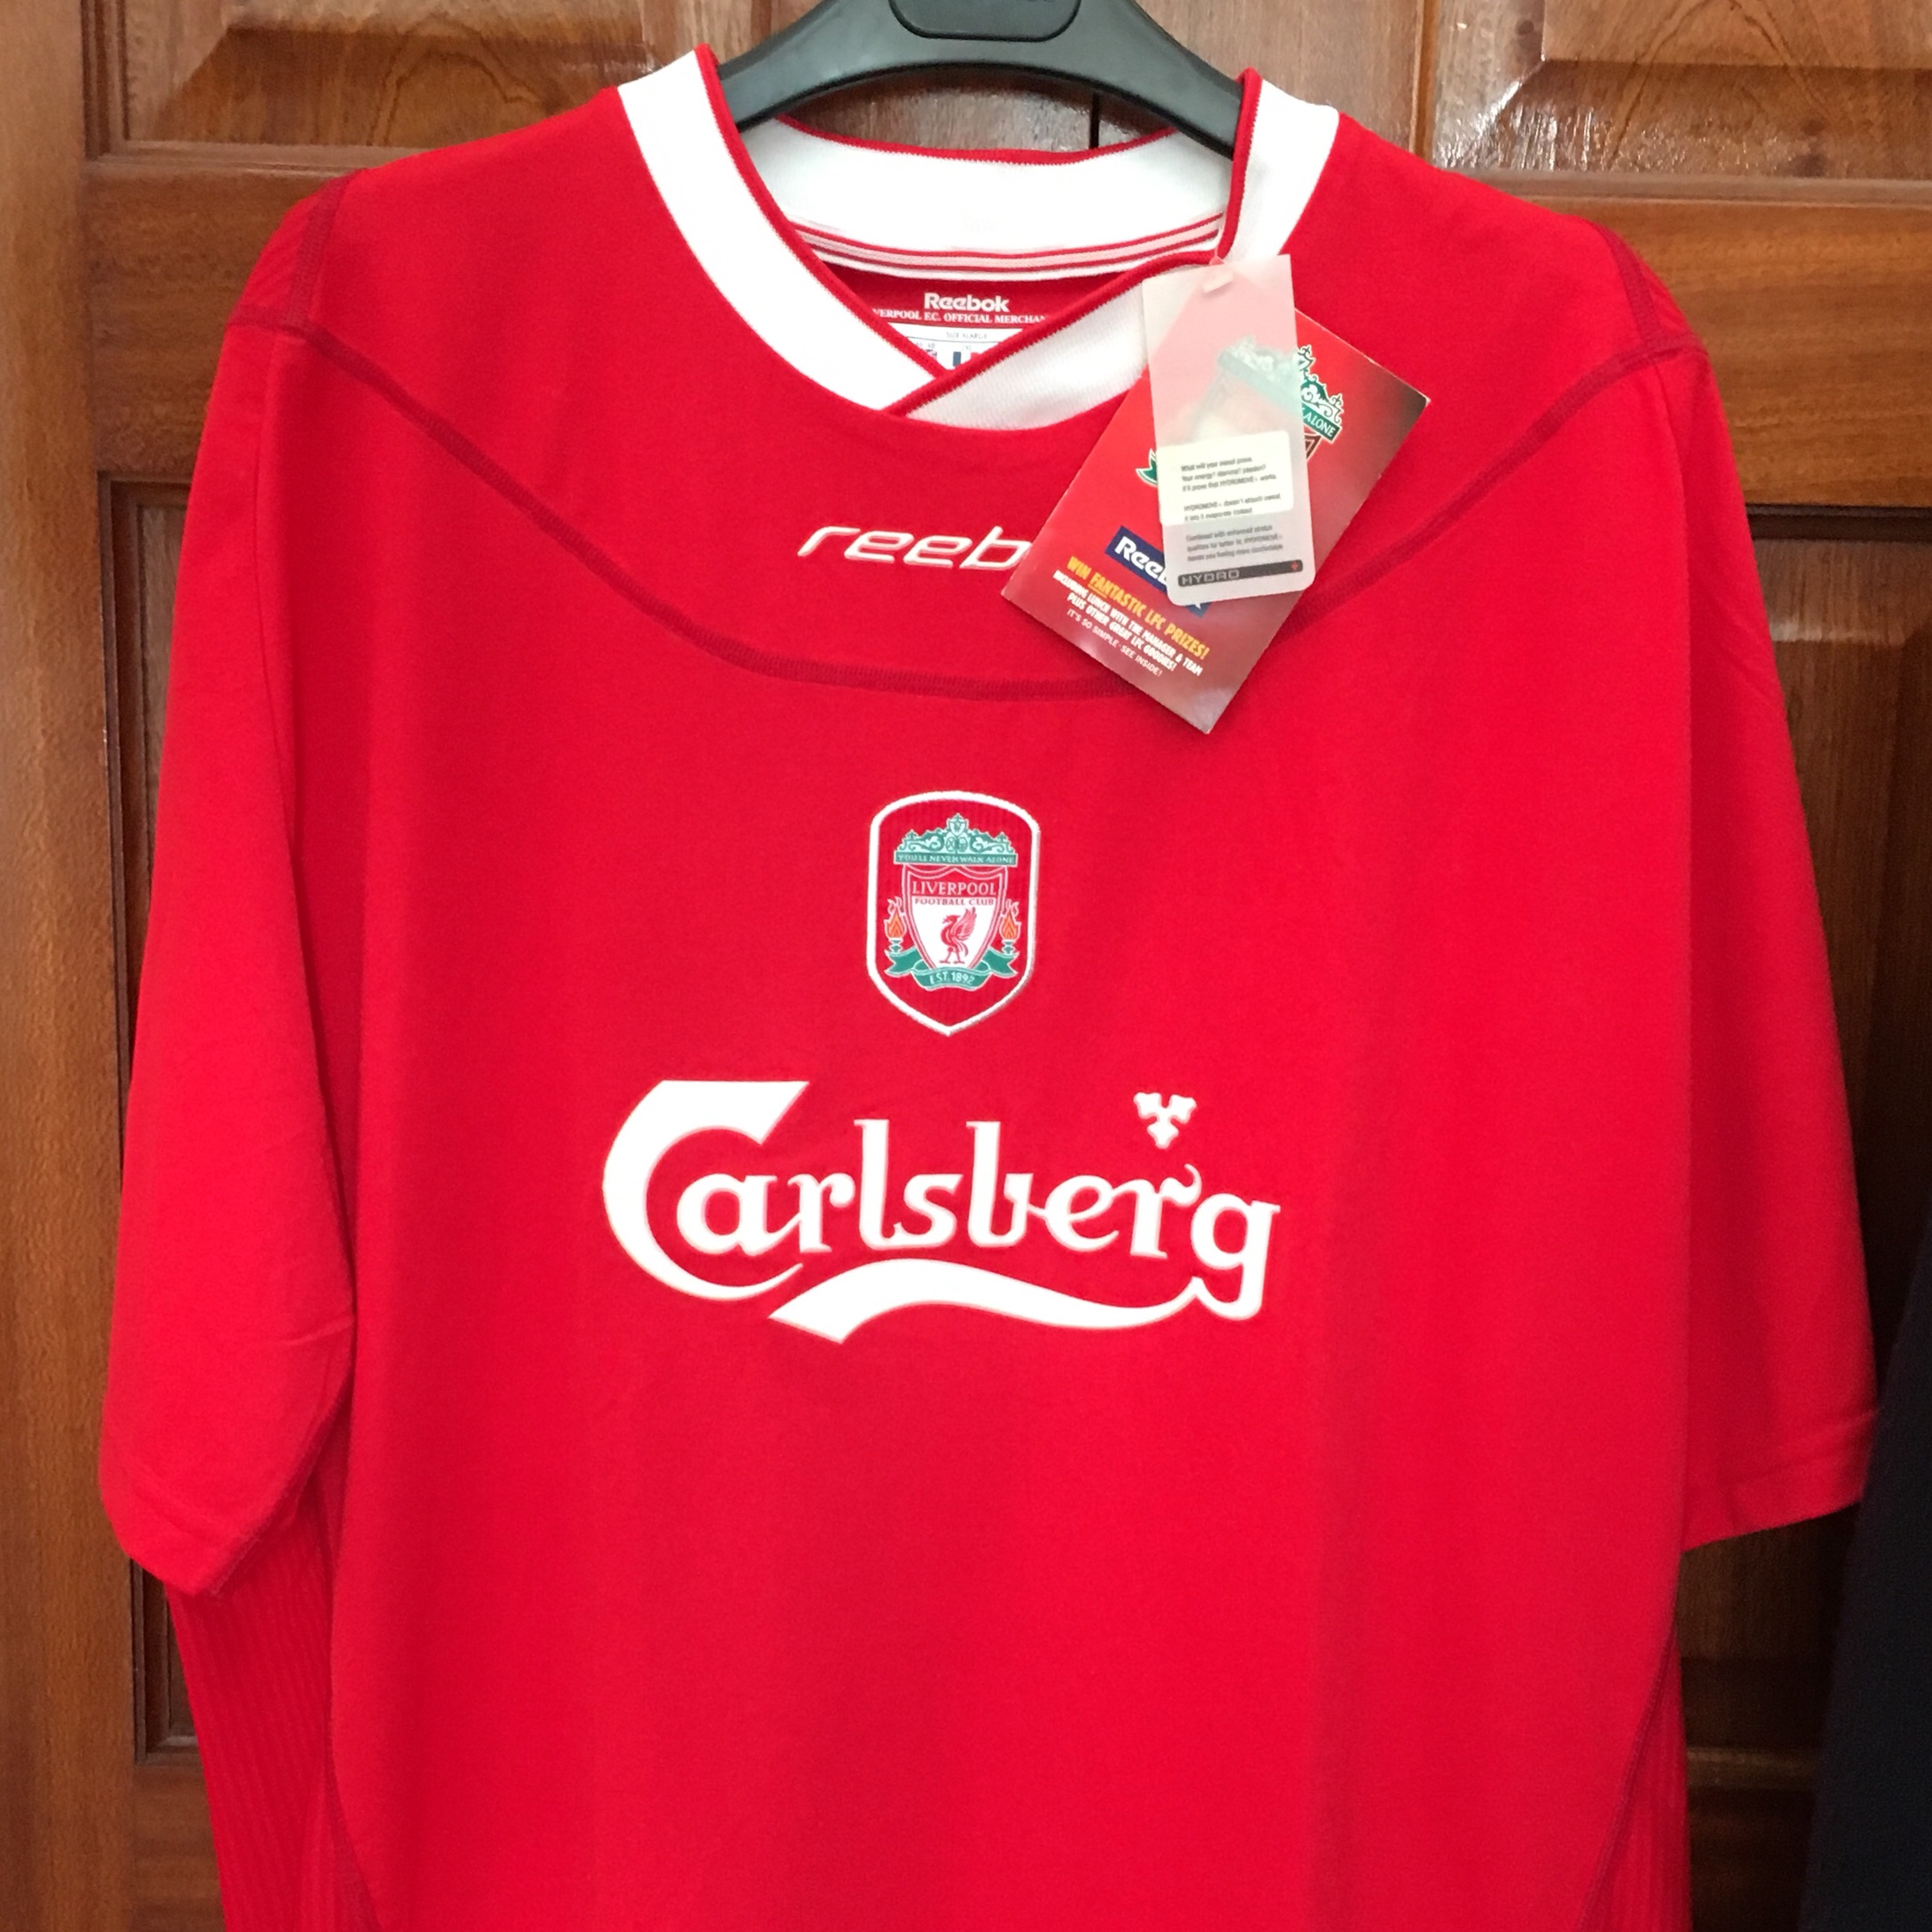 wholesale dealer 0f4ca 5a48a Liverpool jersey new with label reebok - Depop